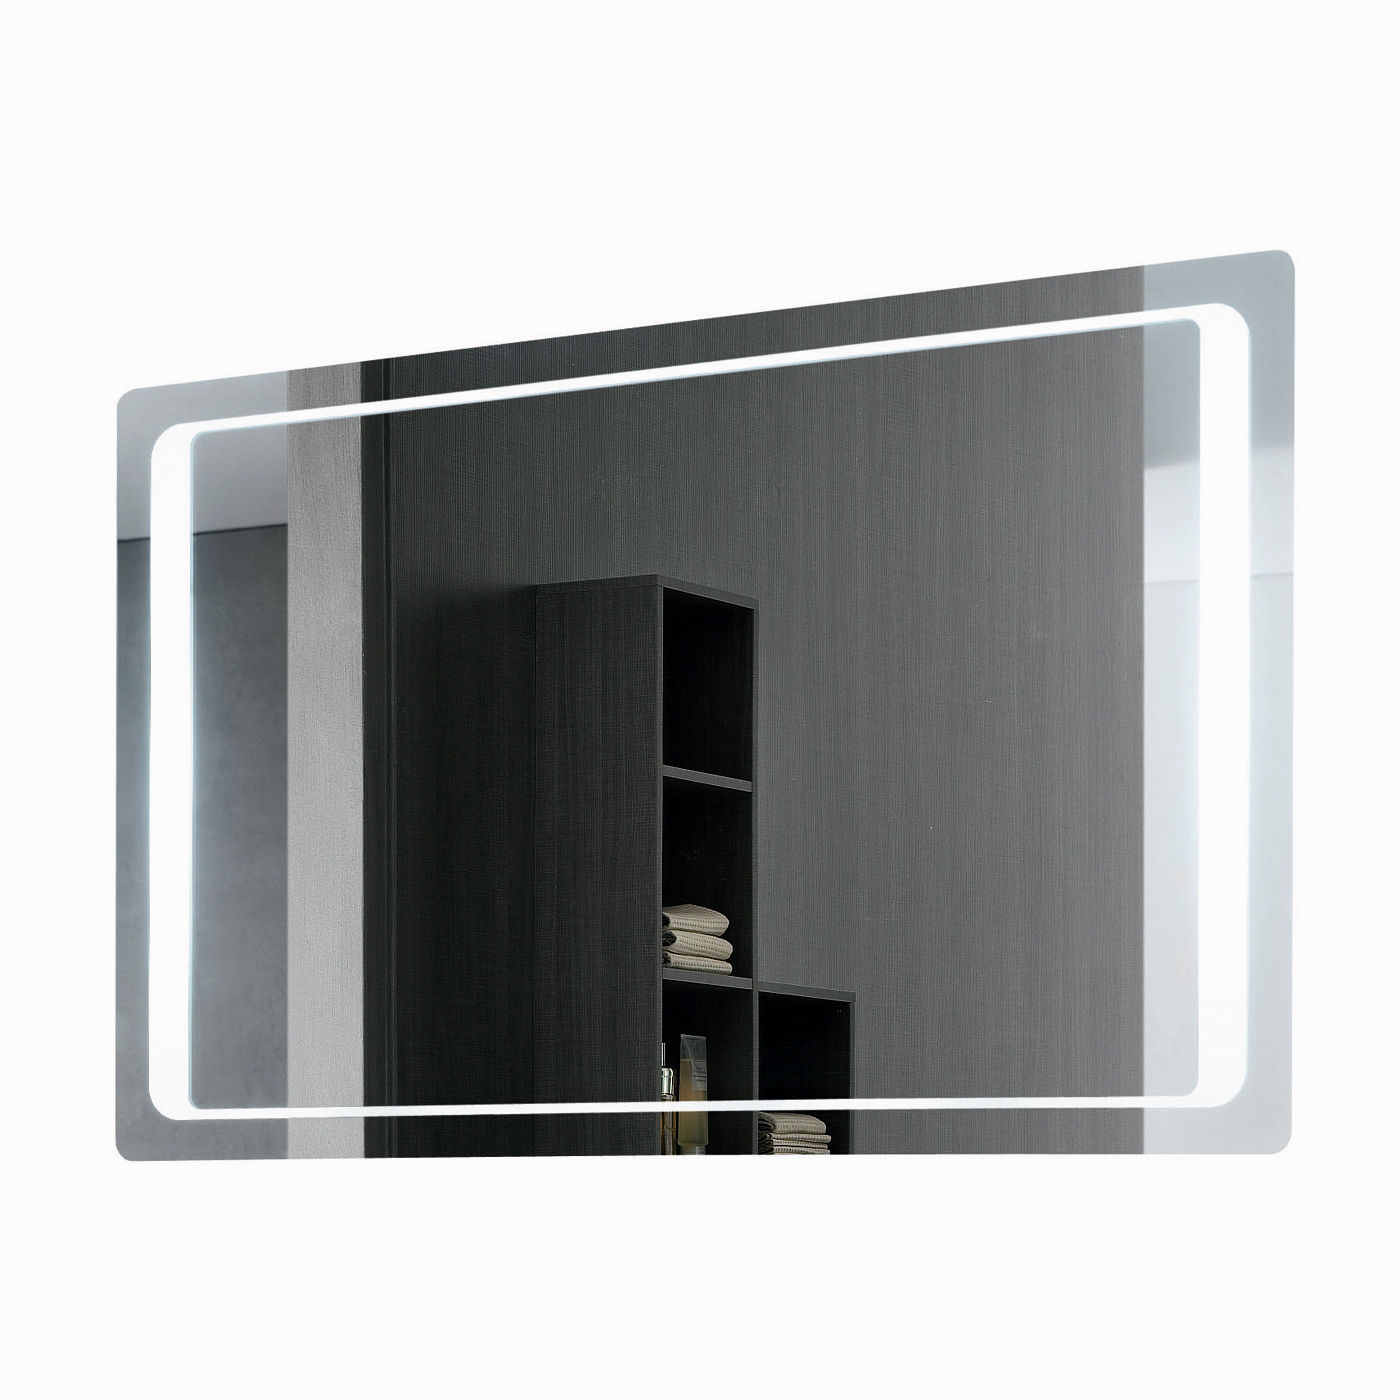 new bathroom frameless mirror photo-Awesome Bathroom Frameless Mirror Concept